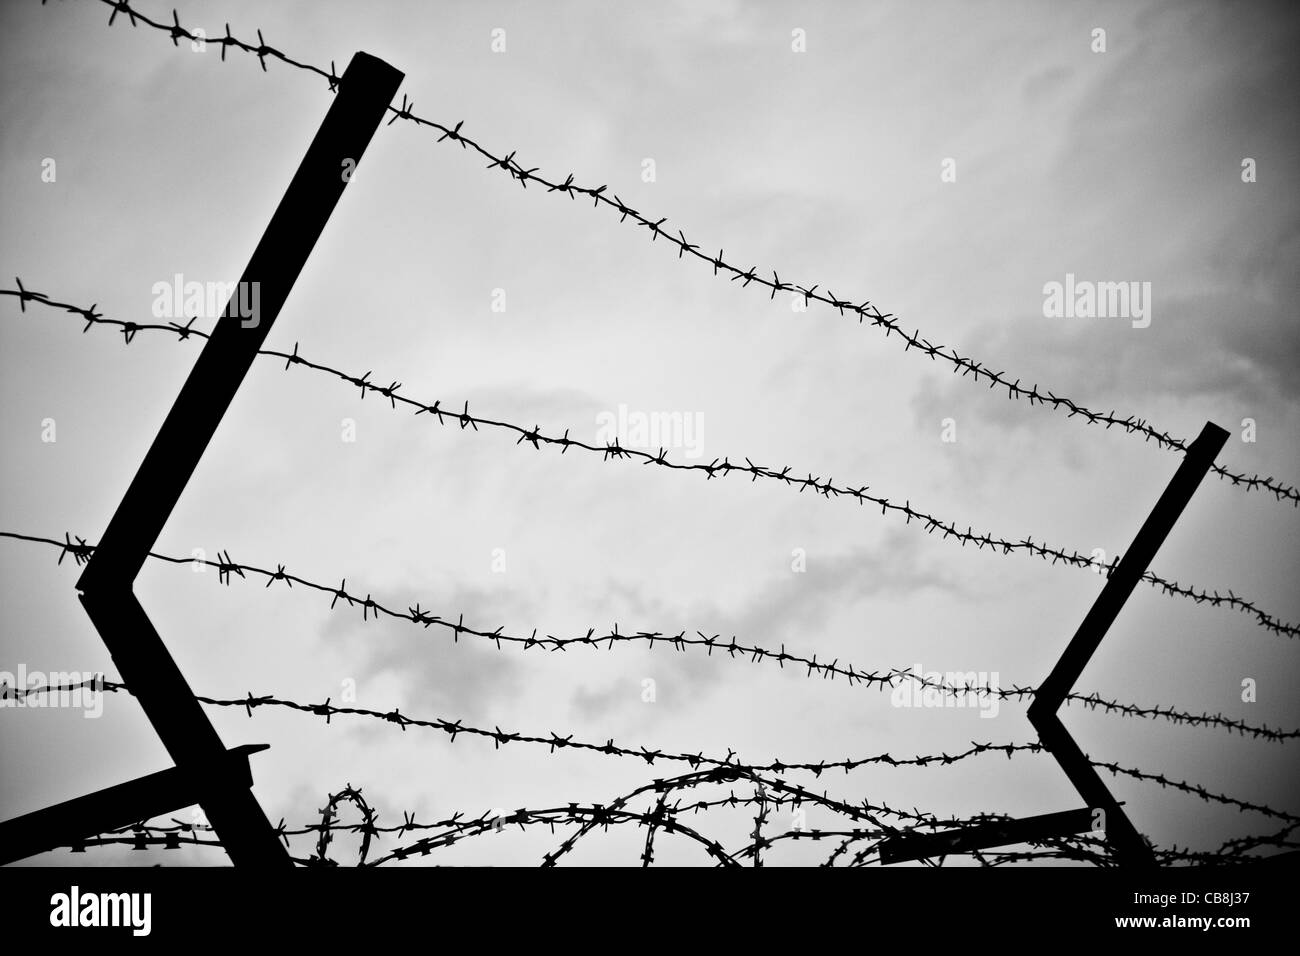 photo of old rusty barbed wire against sky - Stock Image